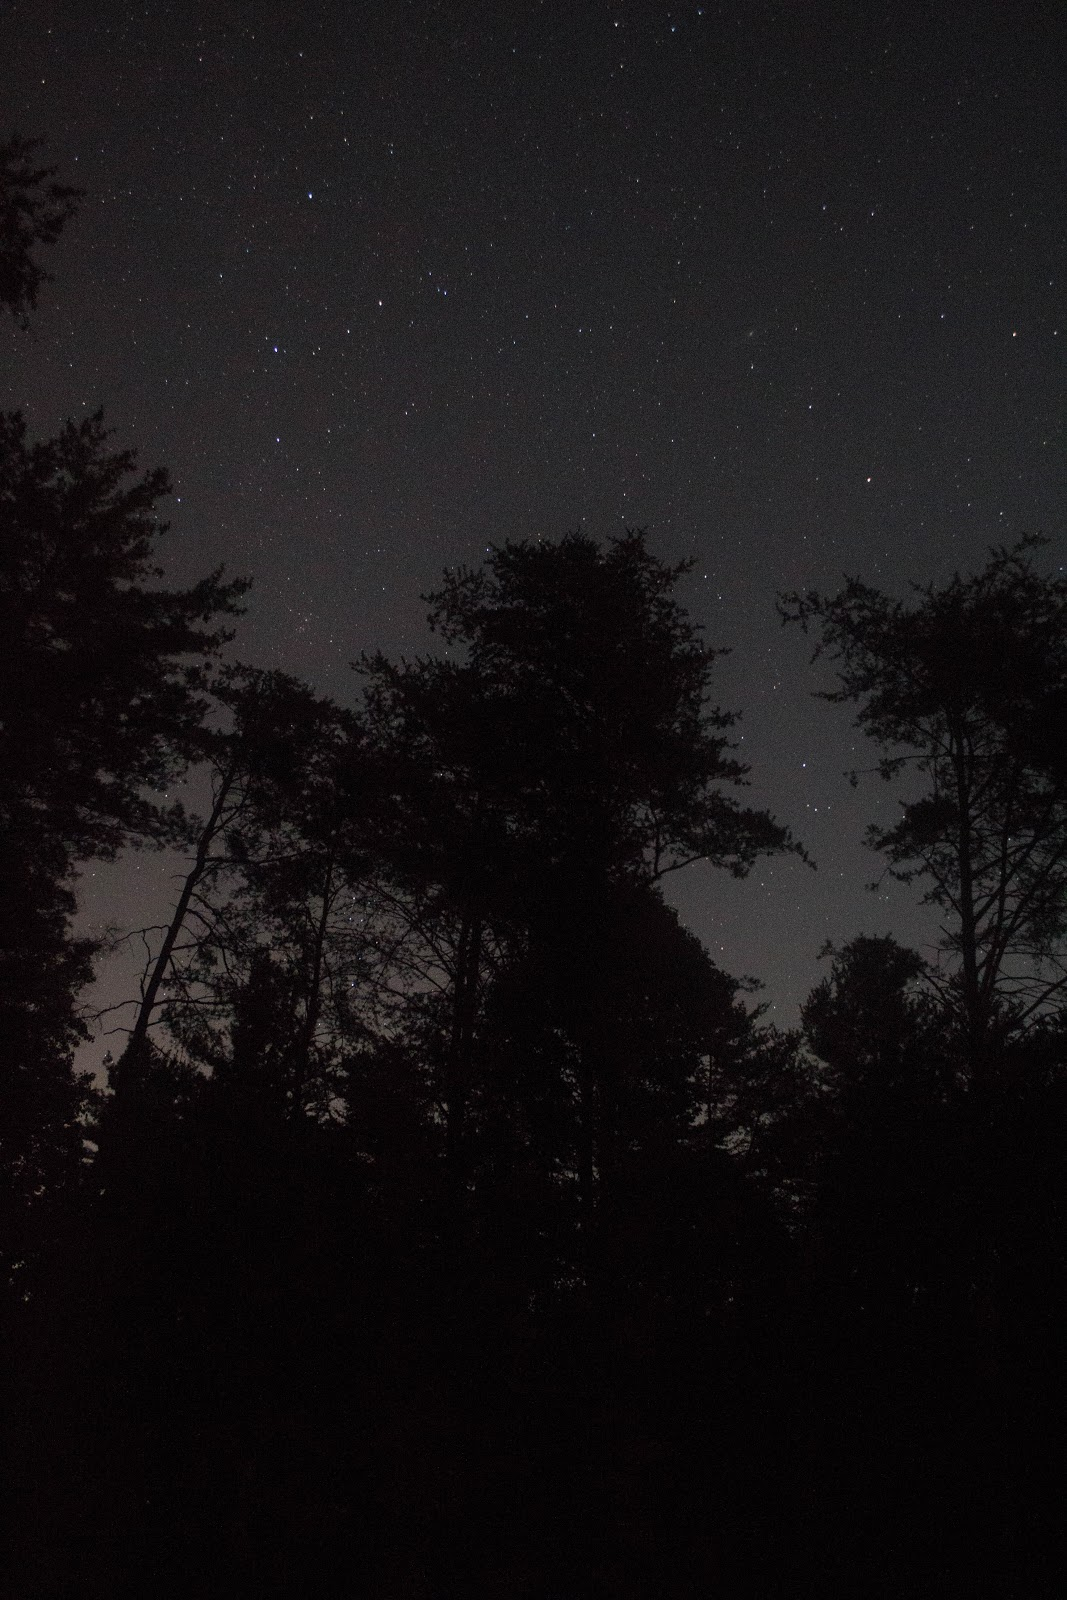 stars and black tree silhouettes